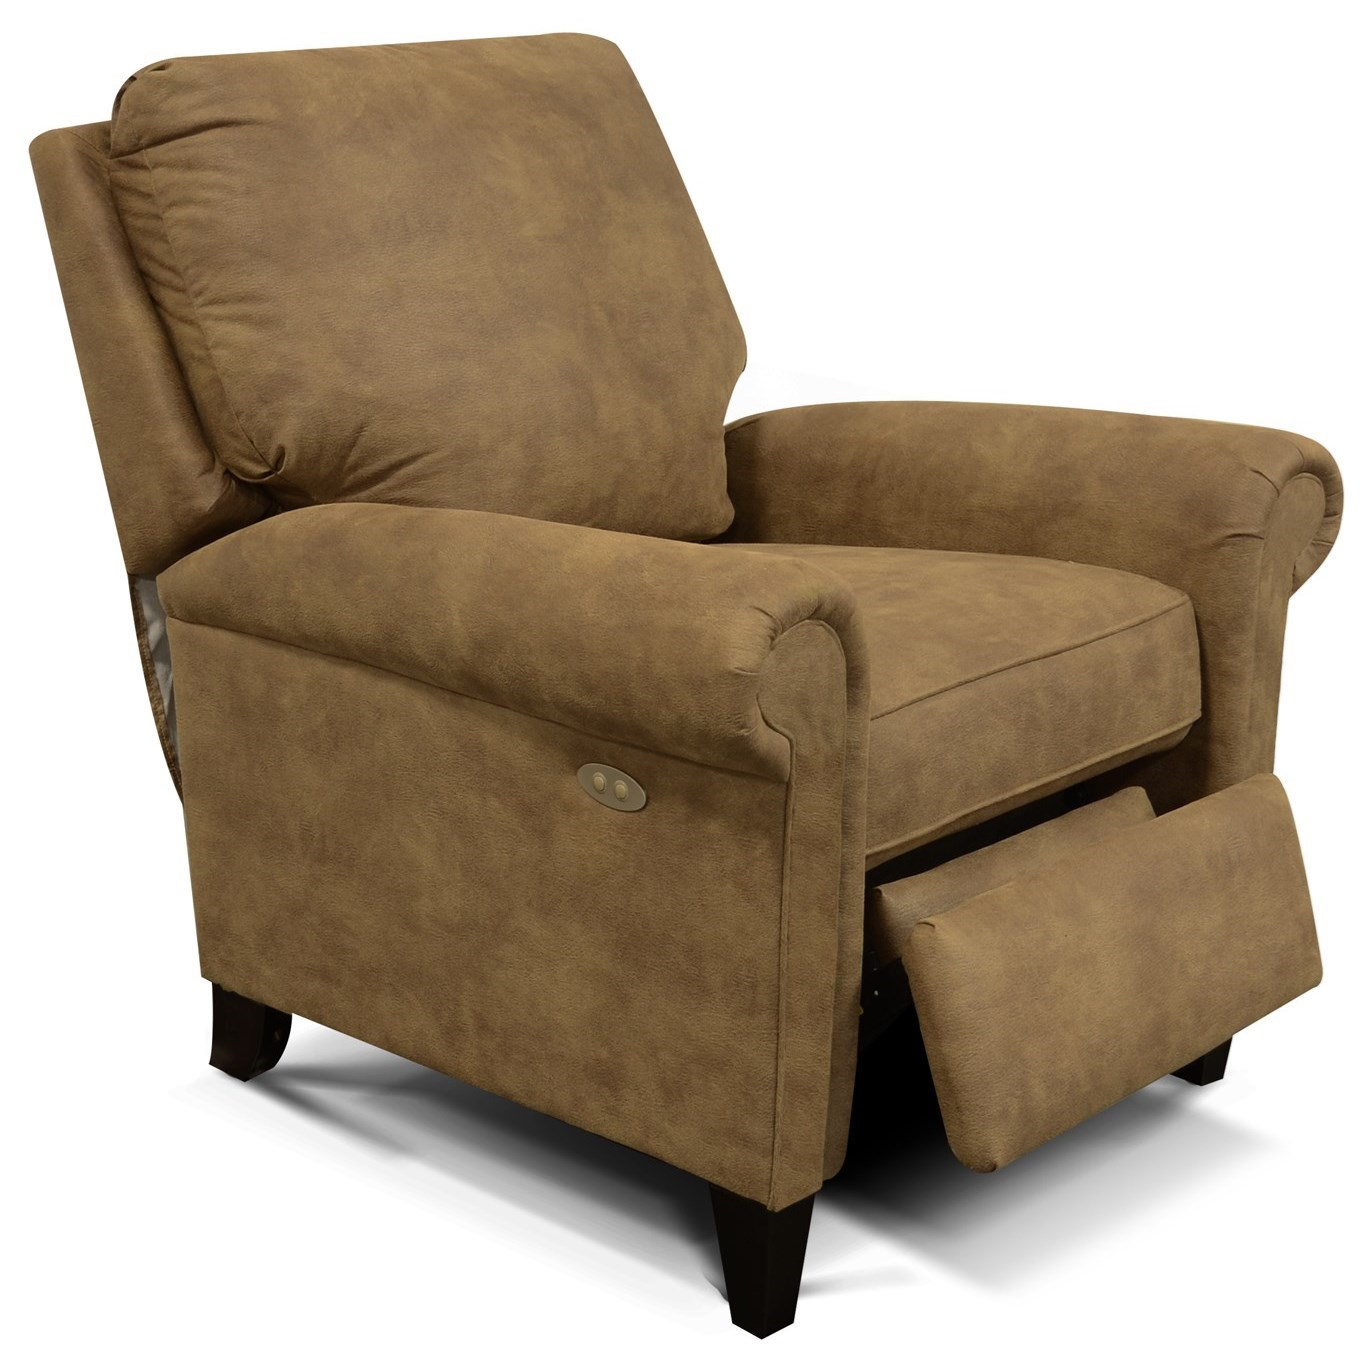 Price High-Leg Reclining Chair by England at SuperStore